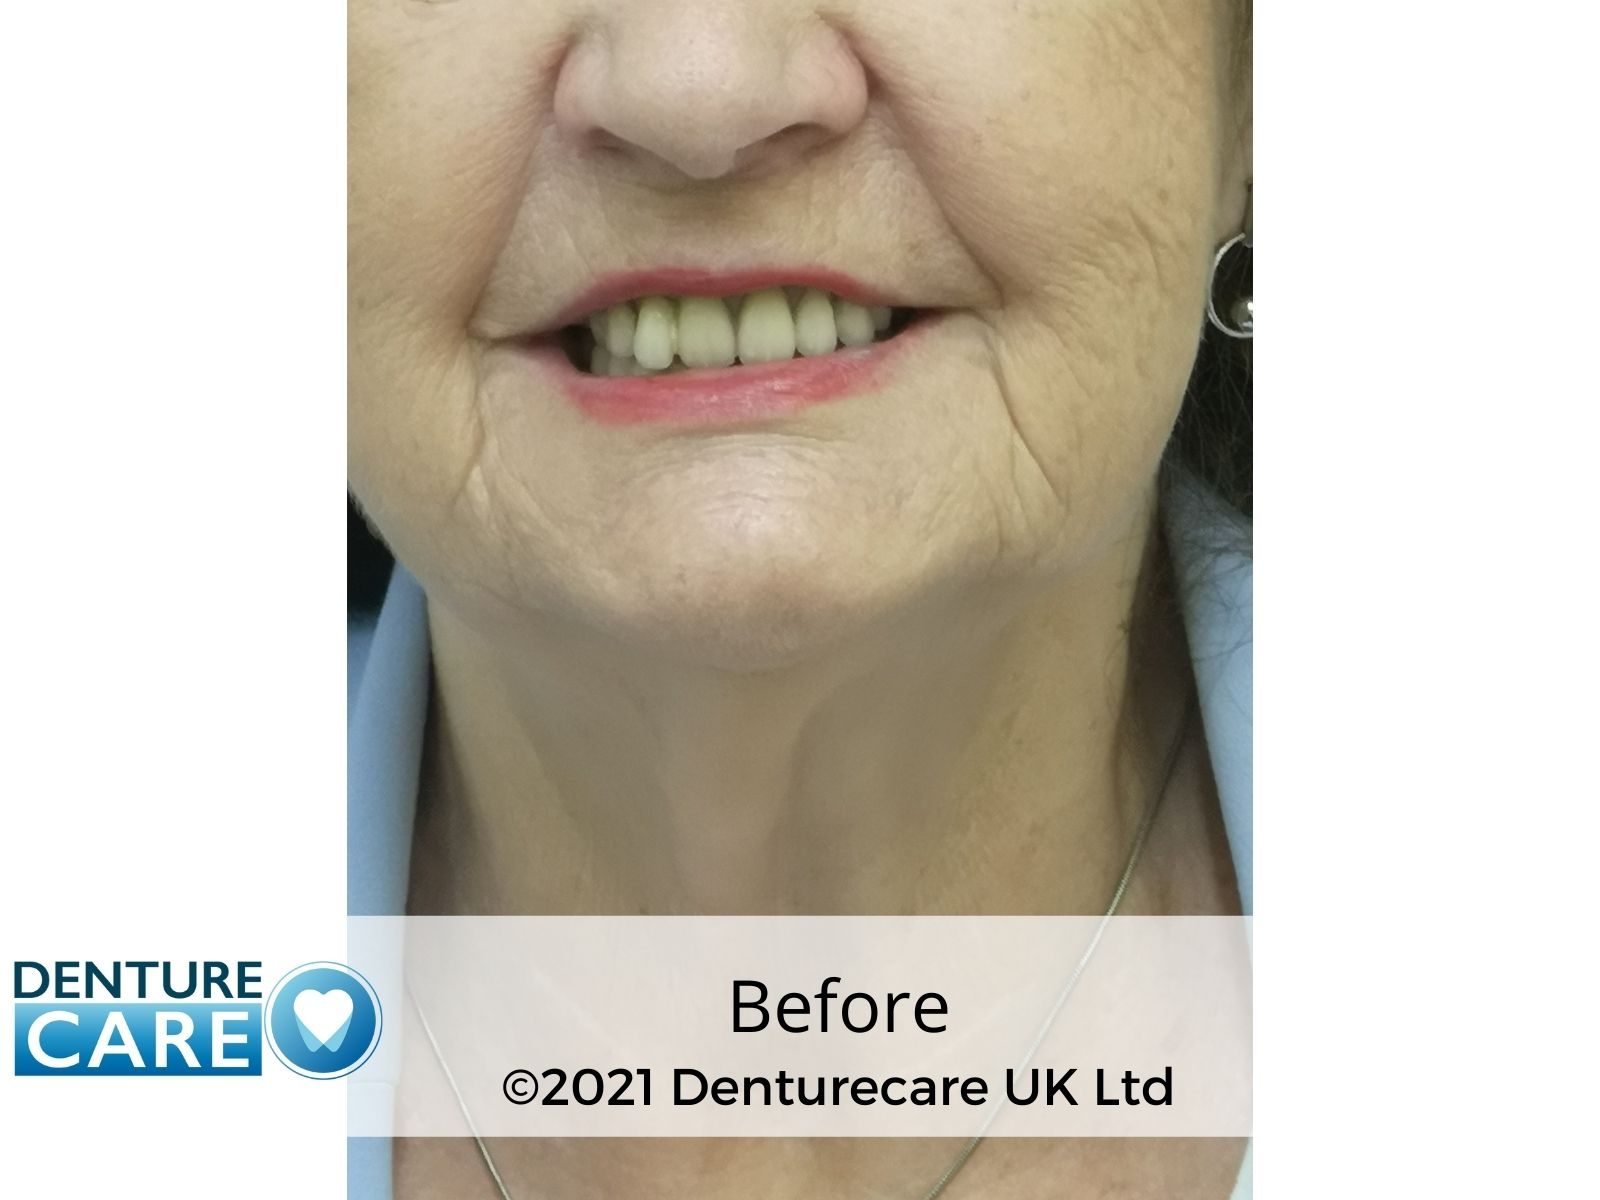 Before and after denture photo